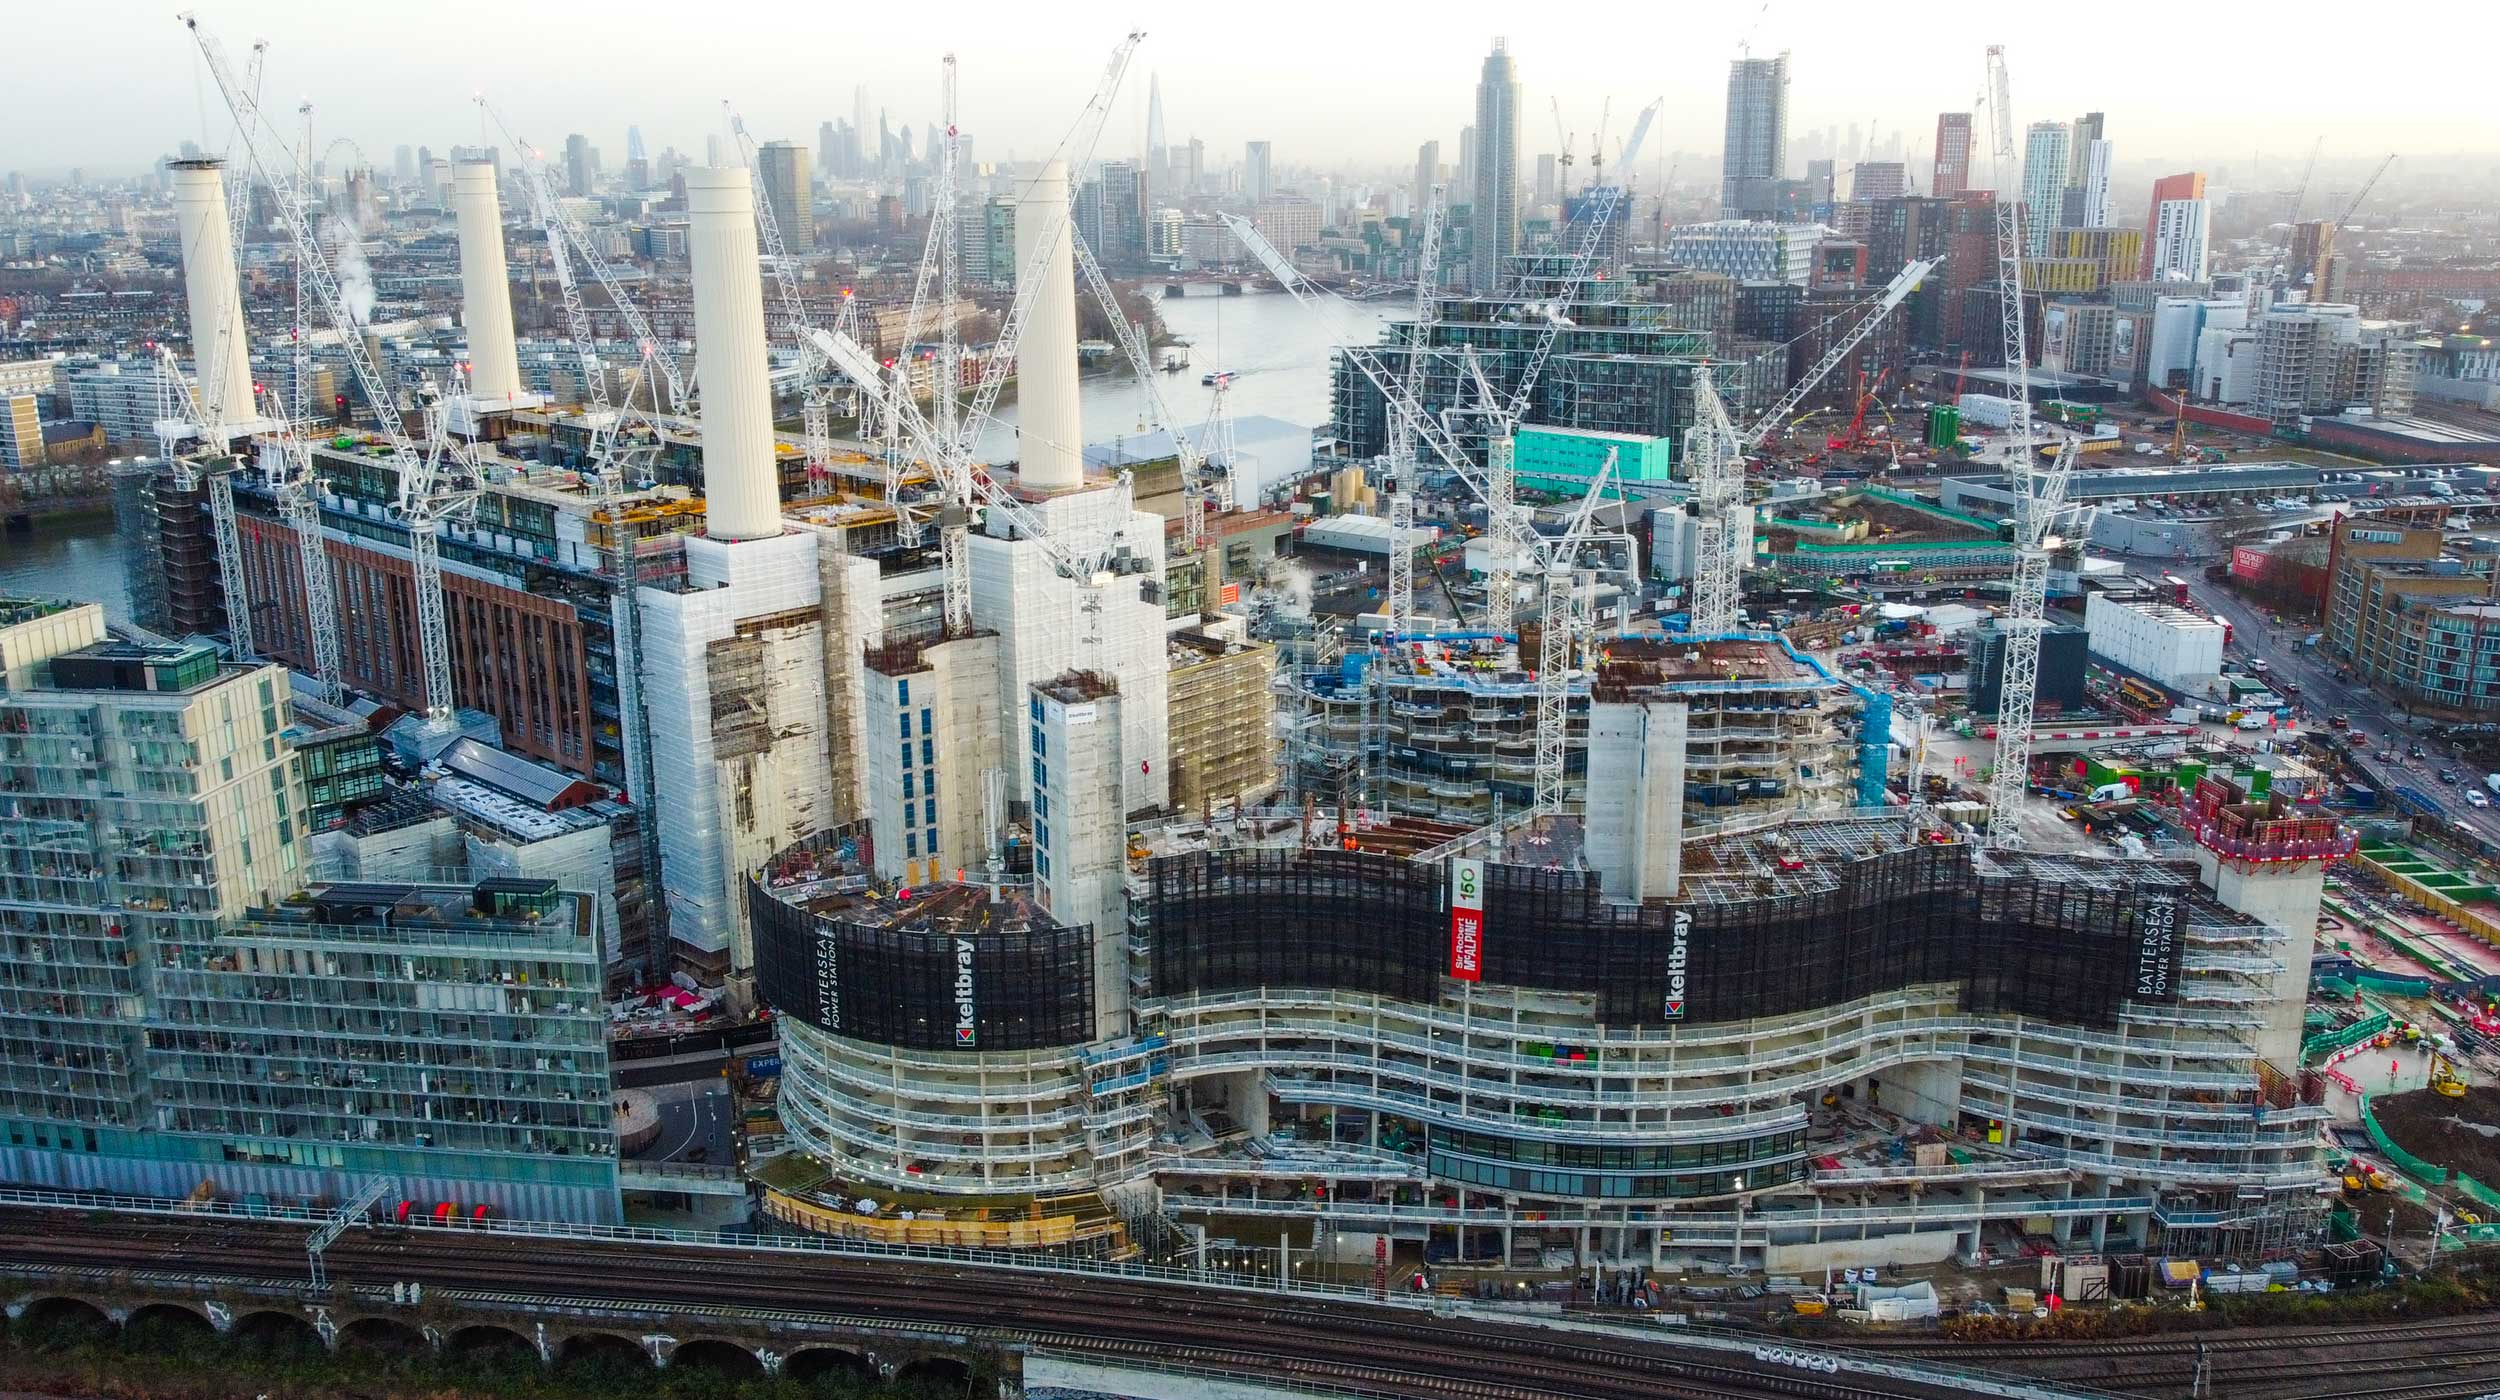 Battersea Power Station is one of the most ambitious projects to be undertaken in the centre of London. The complex will comprise a spacious shopping centre, luxury residences, offices, recreational areas, and green spaces.